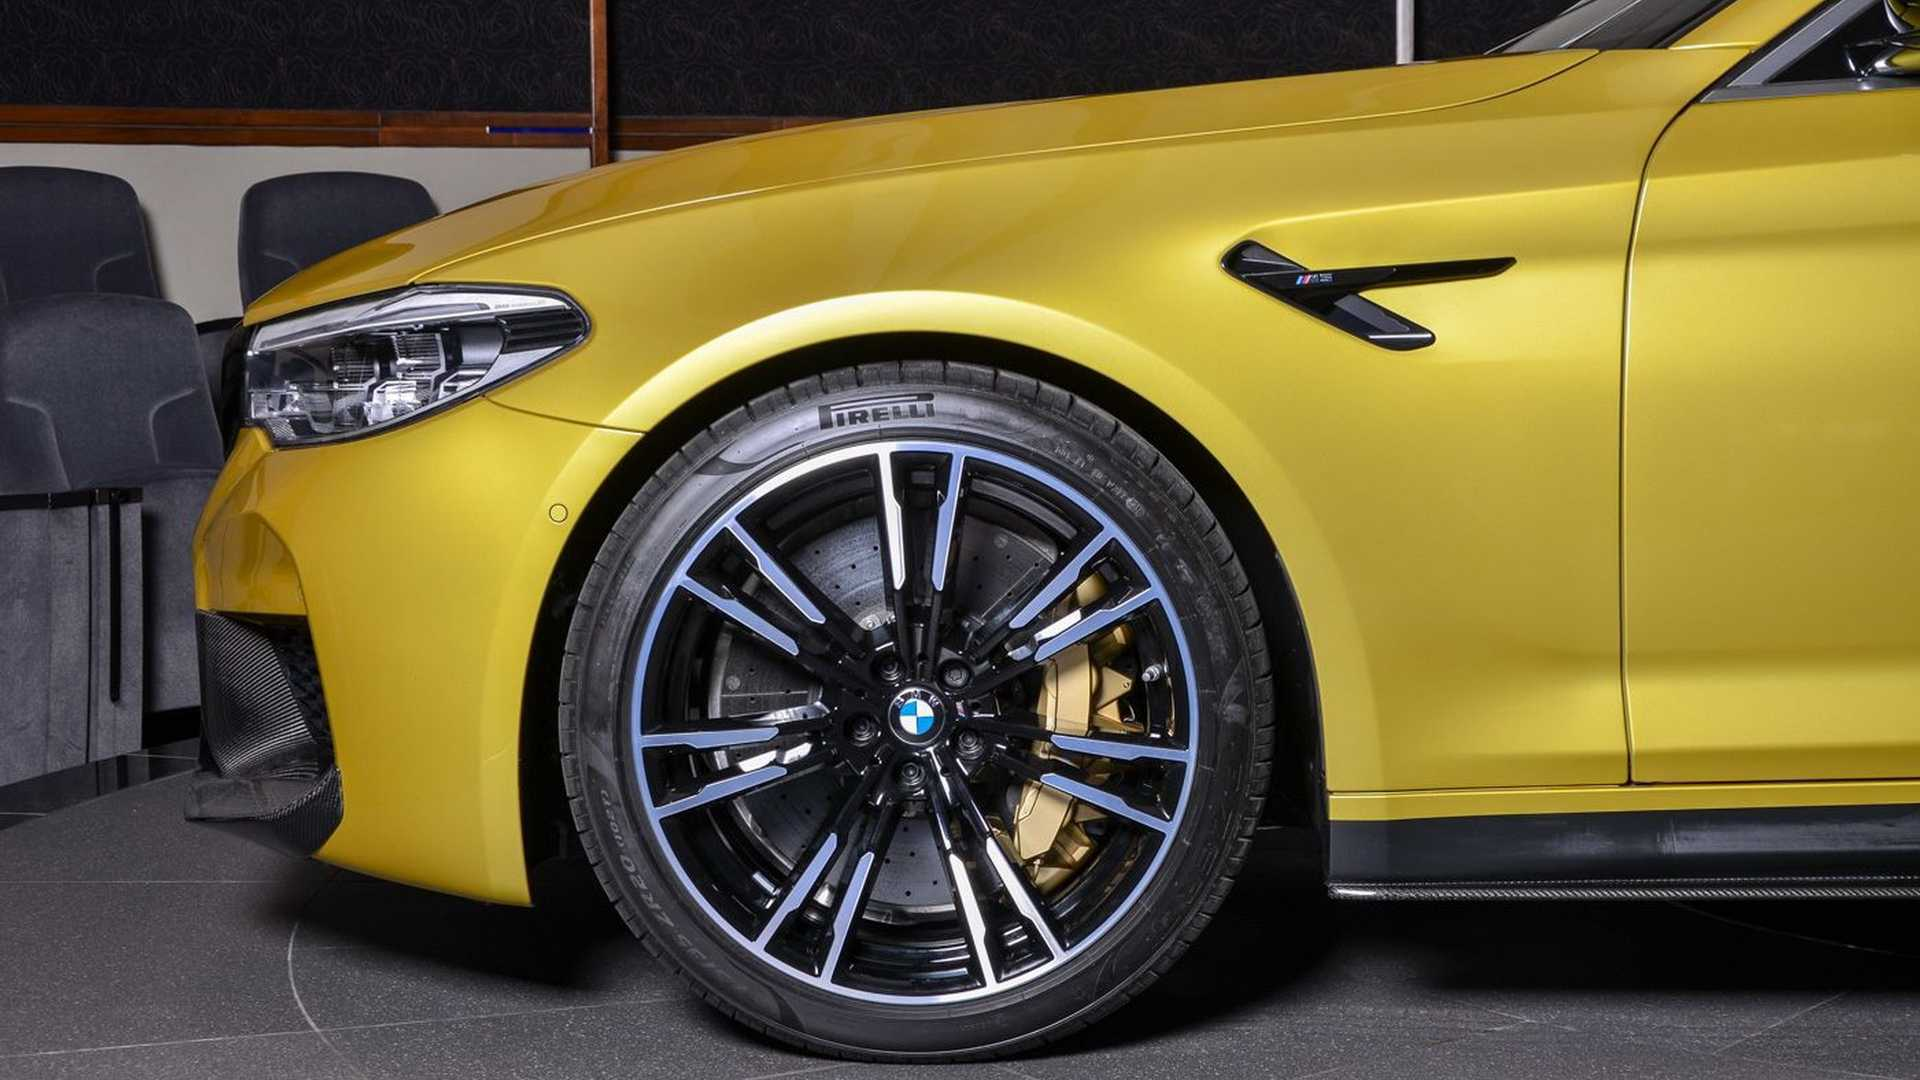 bmw-m5-competition-austin-yellow-8.jpg